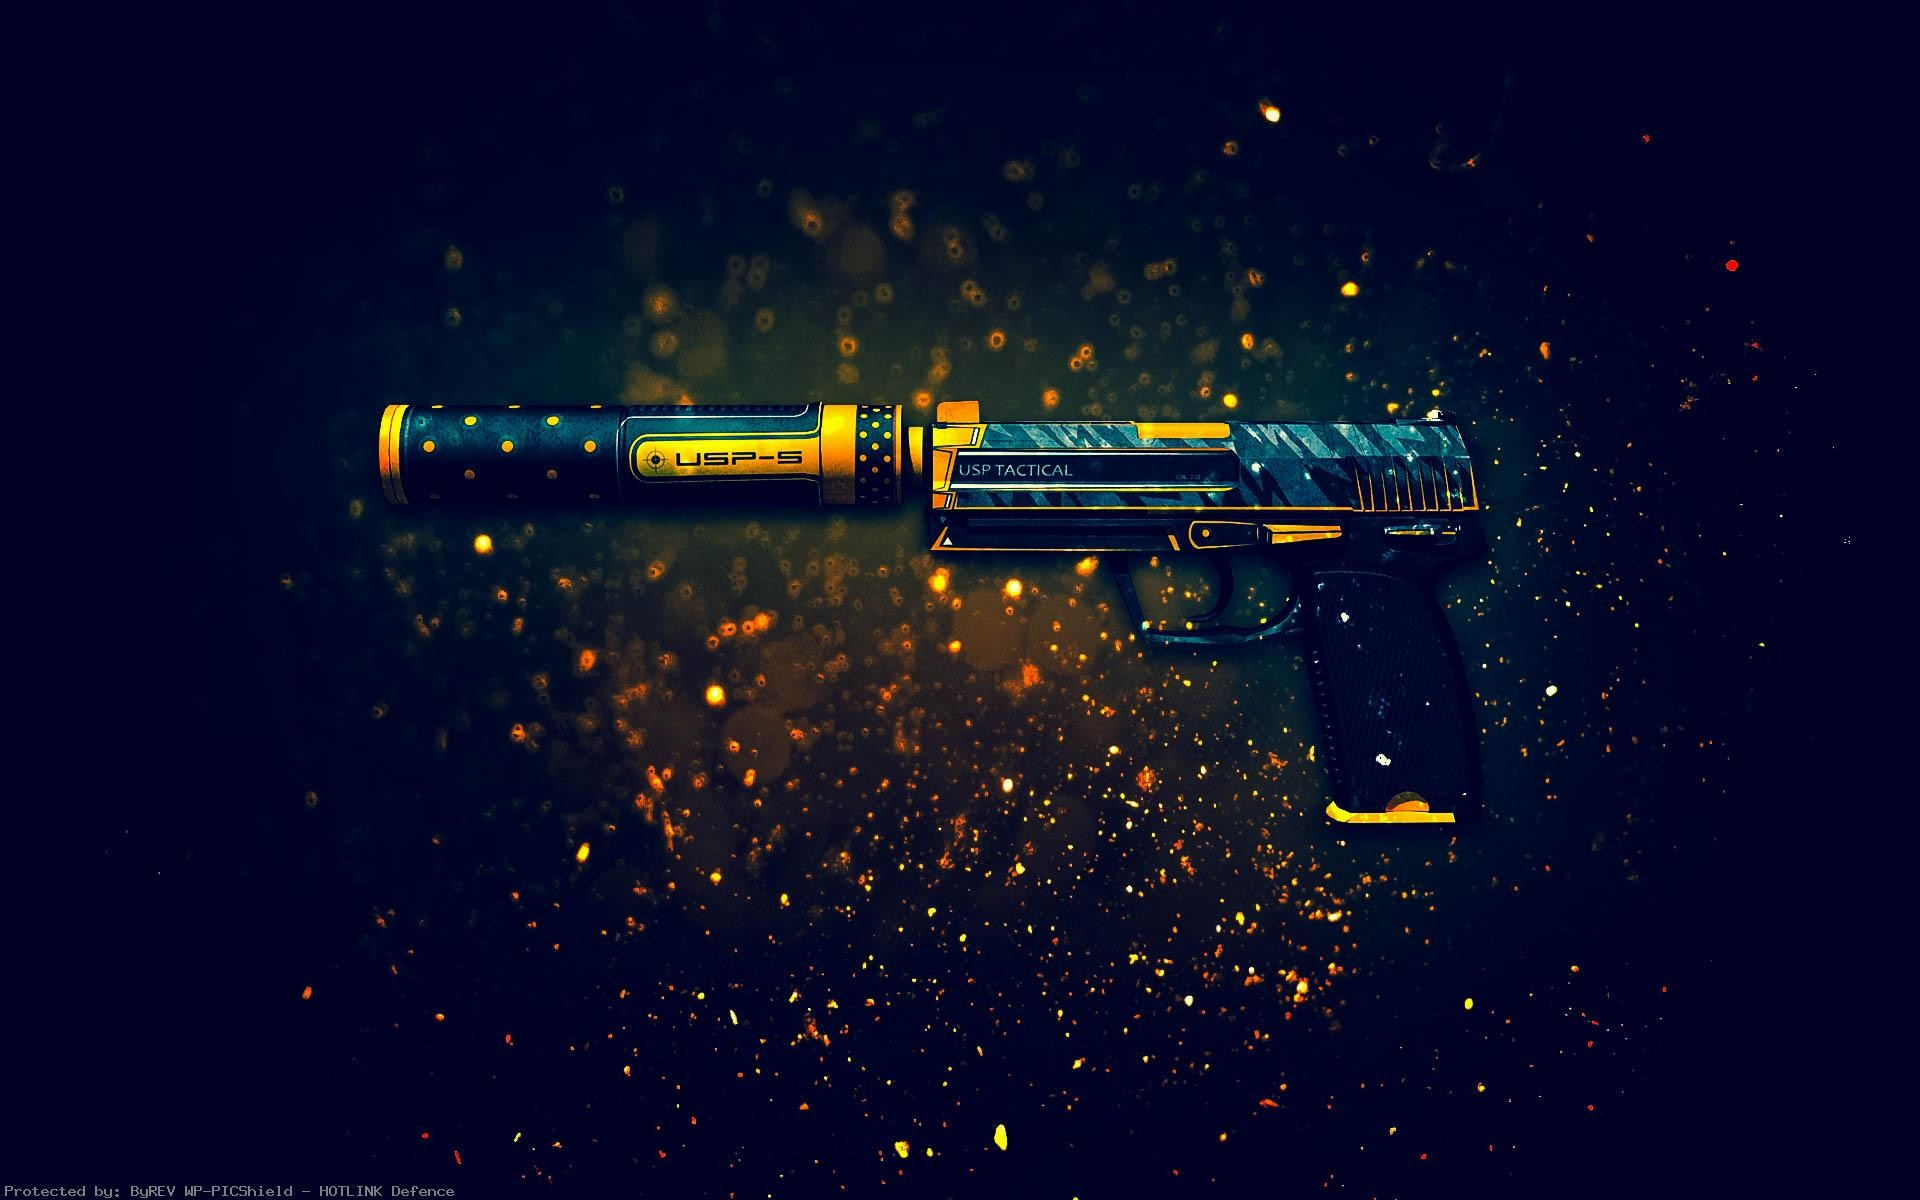 USP-S-Pistol-Orion-Counter-Strike-Global-Offensive- · video-game-Collection- 1920×1080-wallpaper-wp60013403